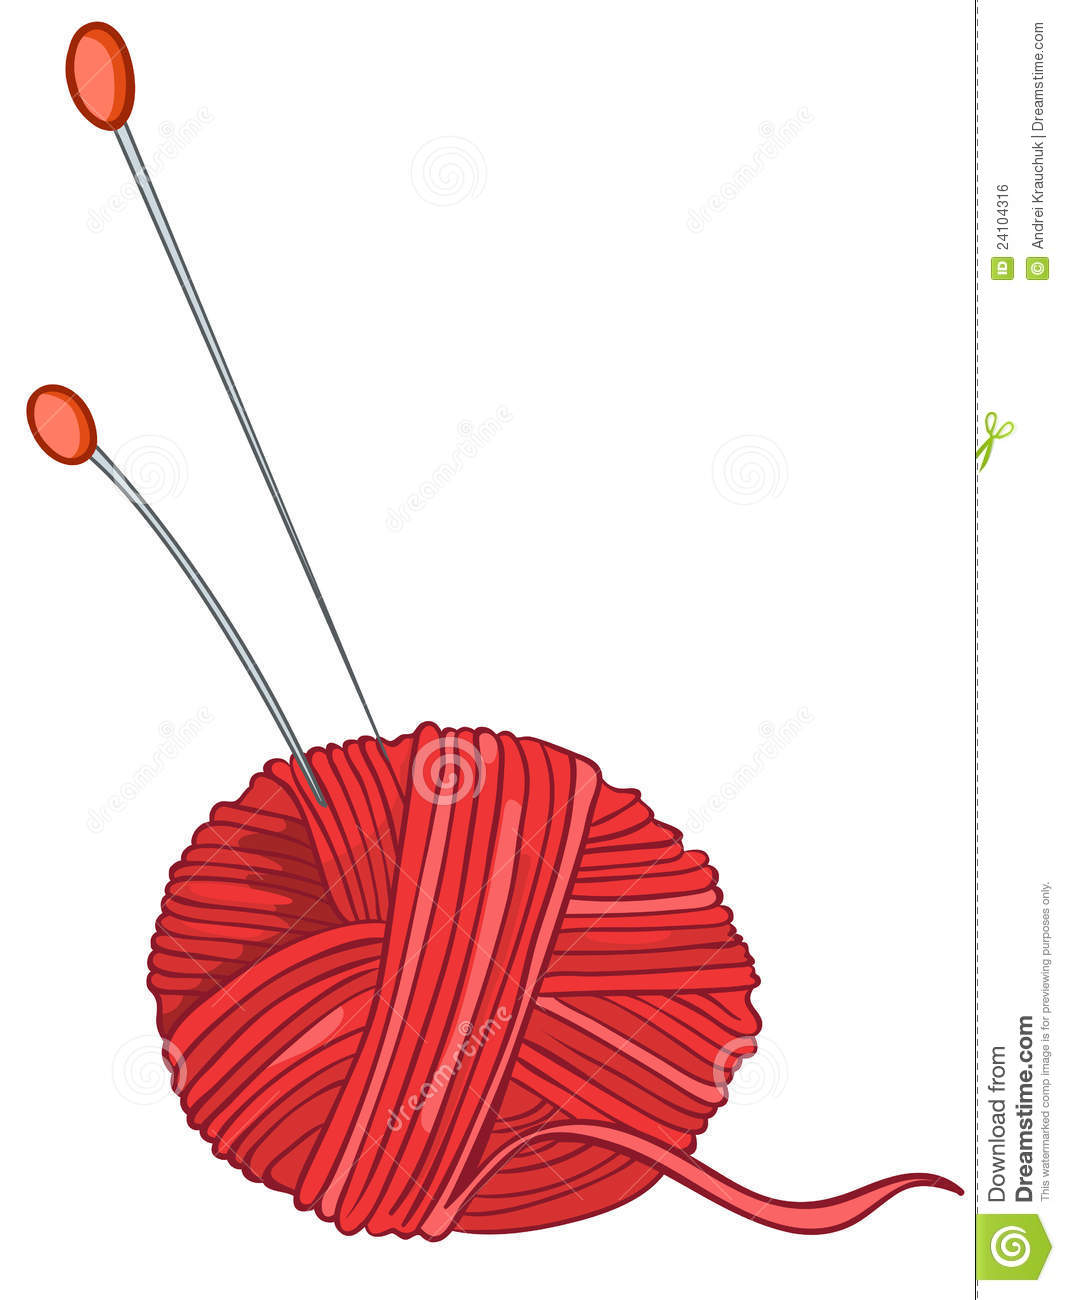 Cartoon Knitting Patterns : Cartoon Home Miscellaneous Knitting Thread Royalty Free Stock Image - Image: ...